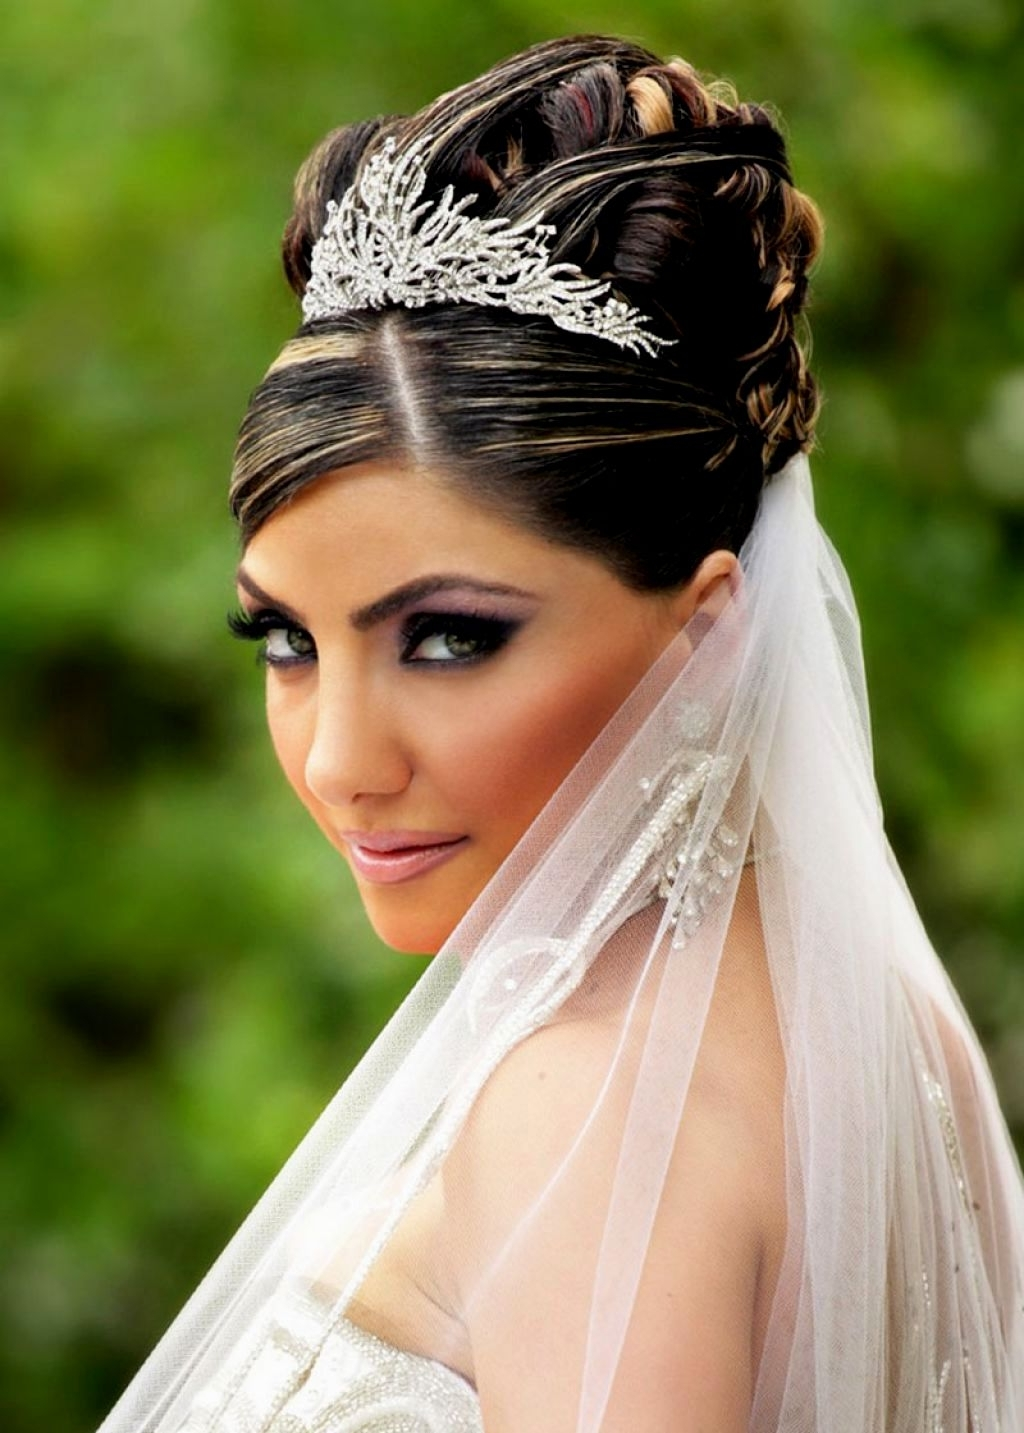 Widely Used Wedding Hairstyles For Medium Length Hair With Veil For Bridal Hairstyles Updo With Veil (View 15 of 15)